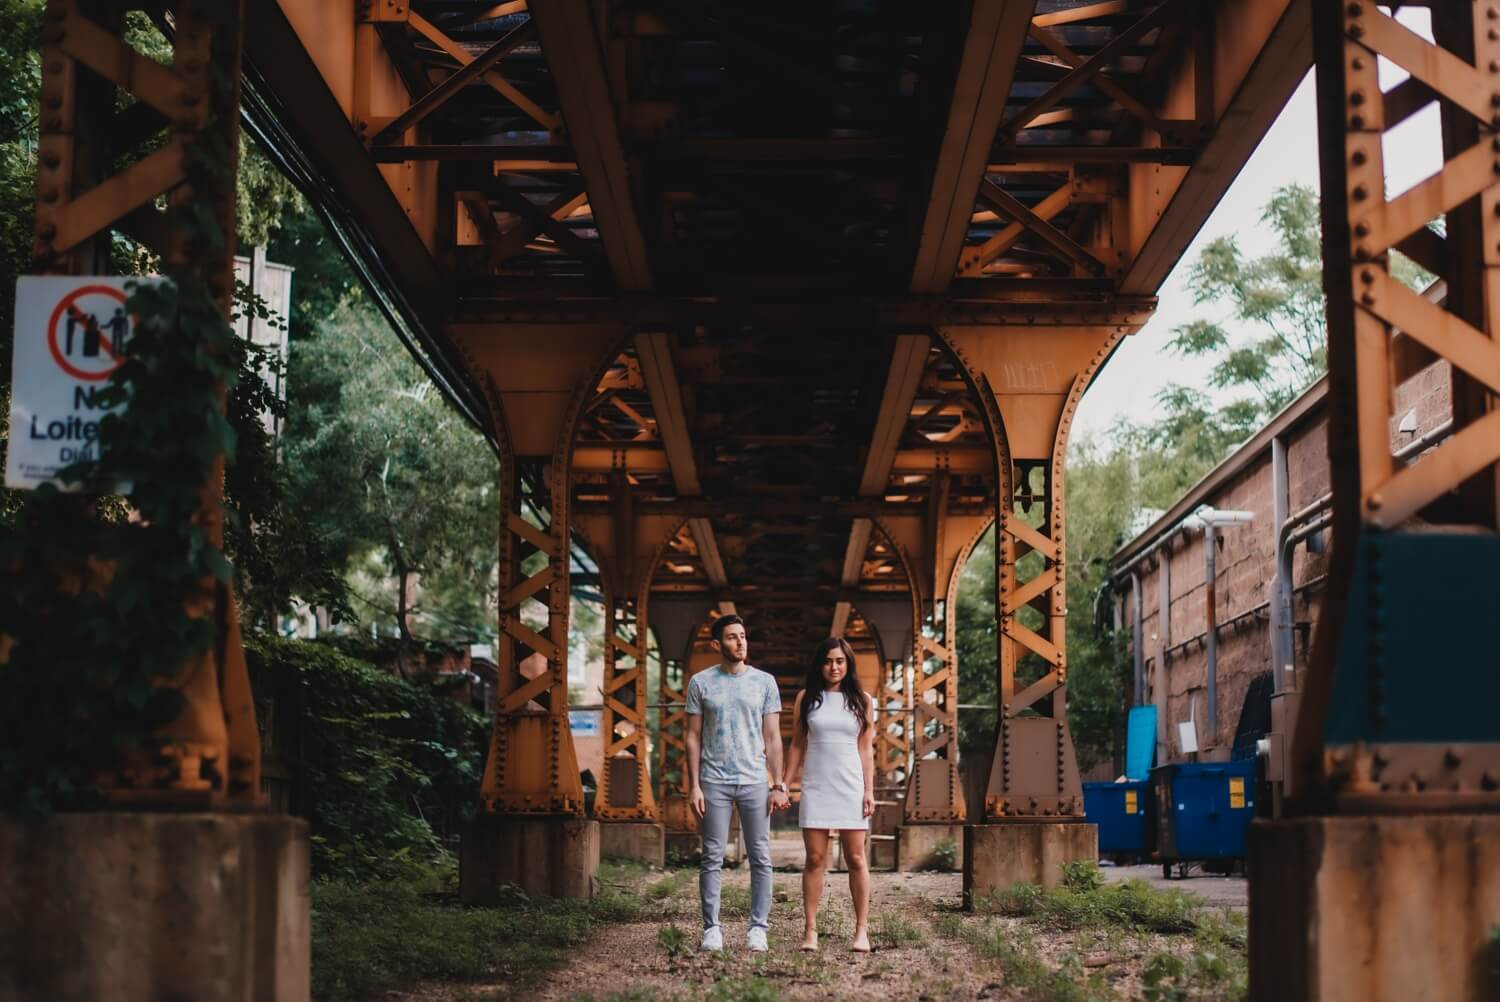 Wicker Park Engagement Photographer - The Adamkovi, epic under the L train tracks photo.